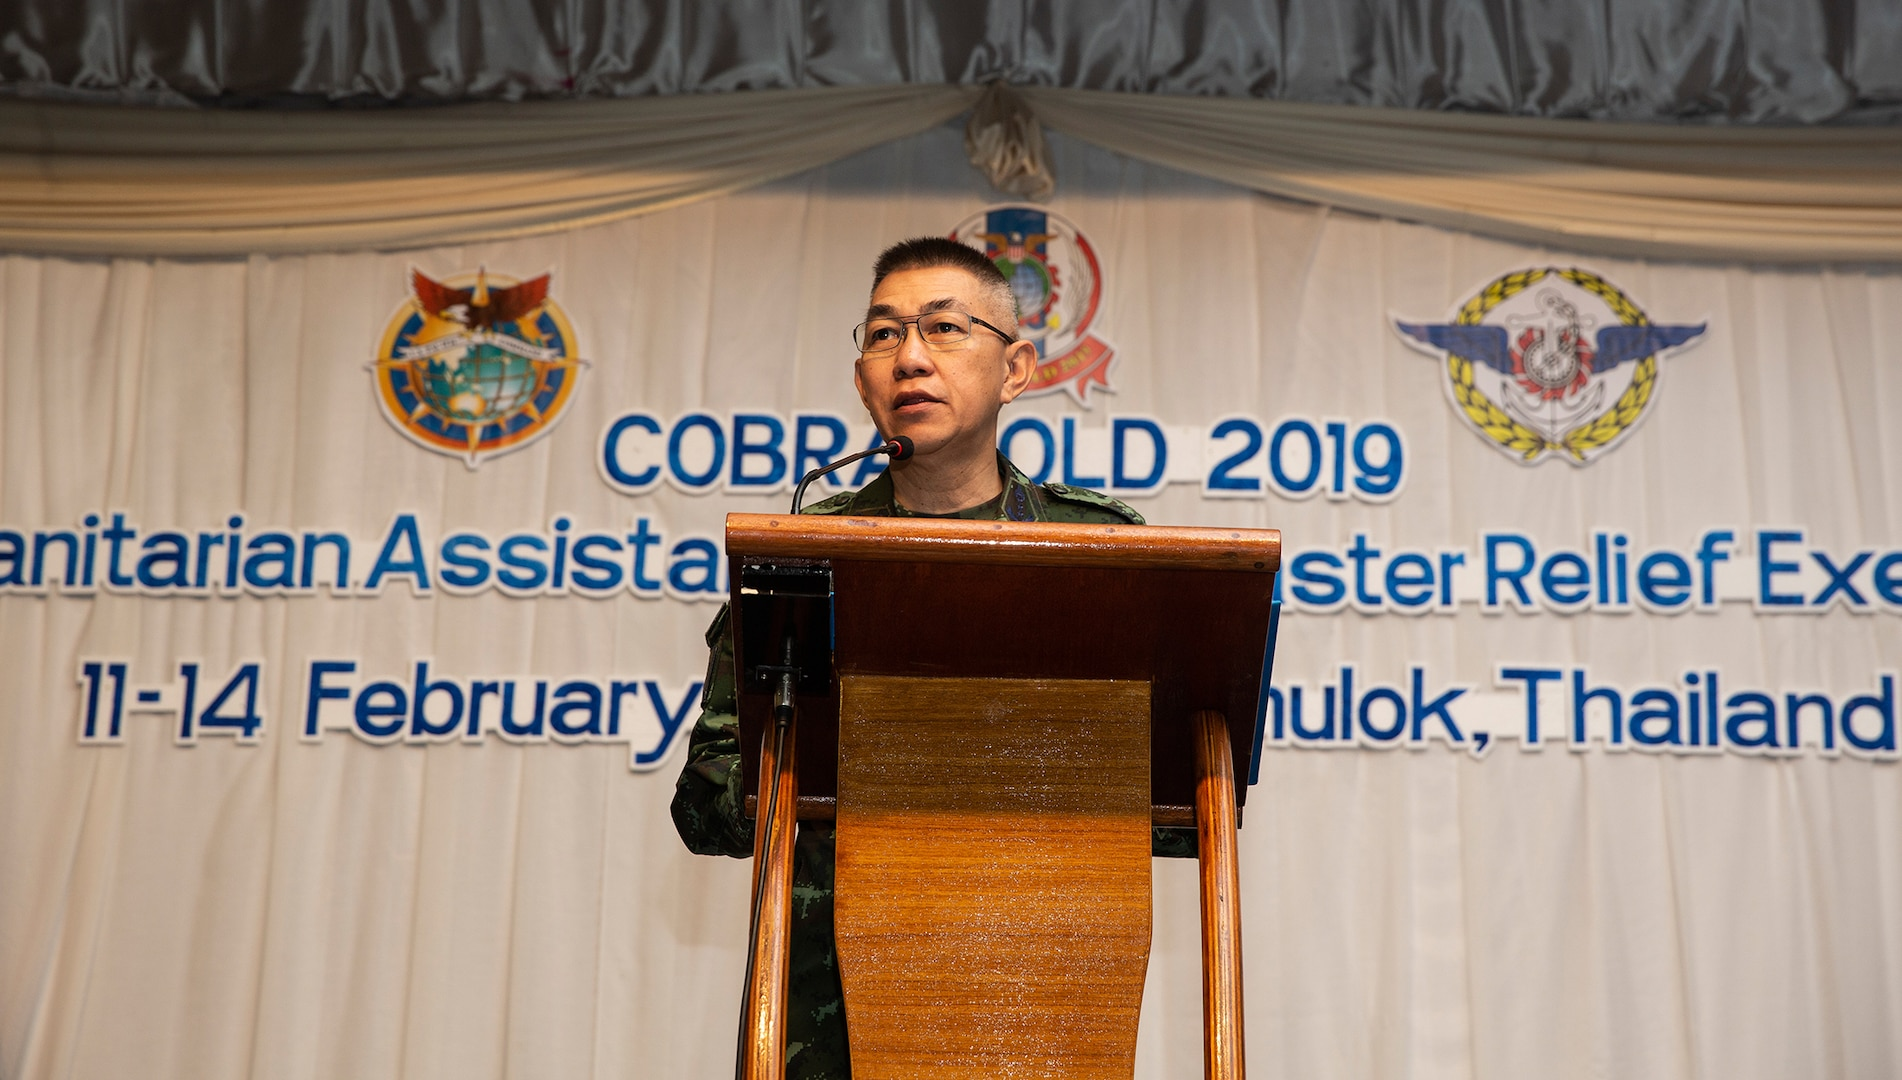 Cobra Gold19: Humanitarian Assistance and Disaster Response Exercise Commenced in Thailand